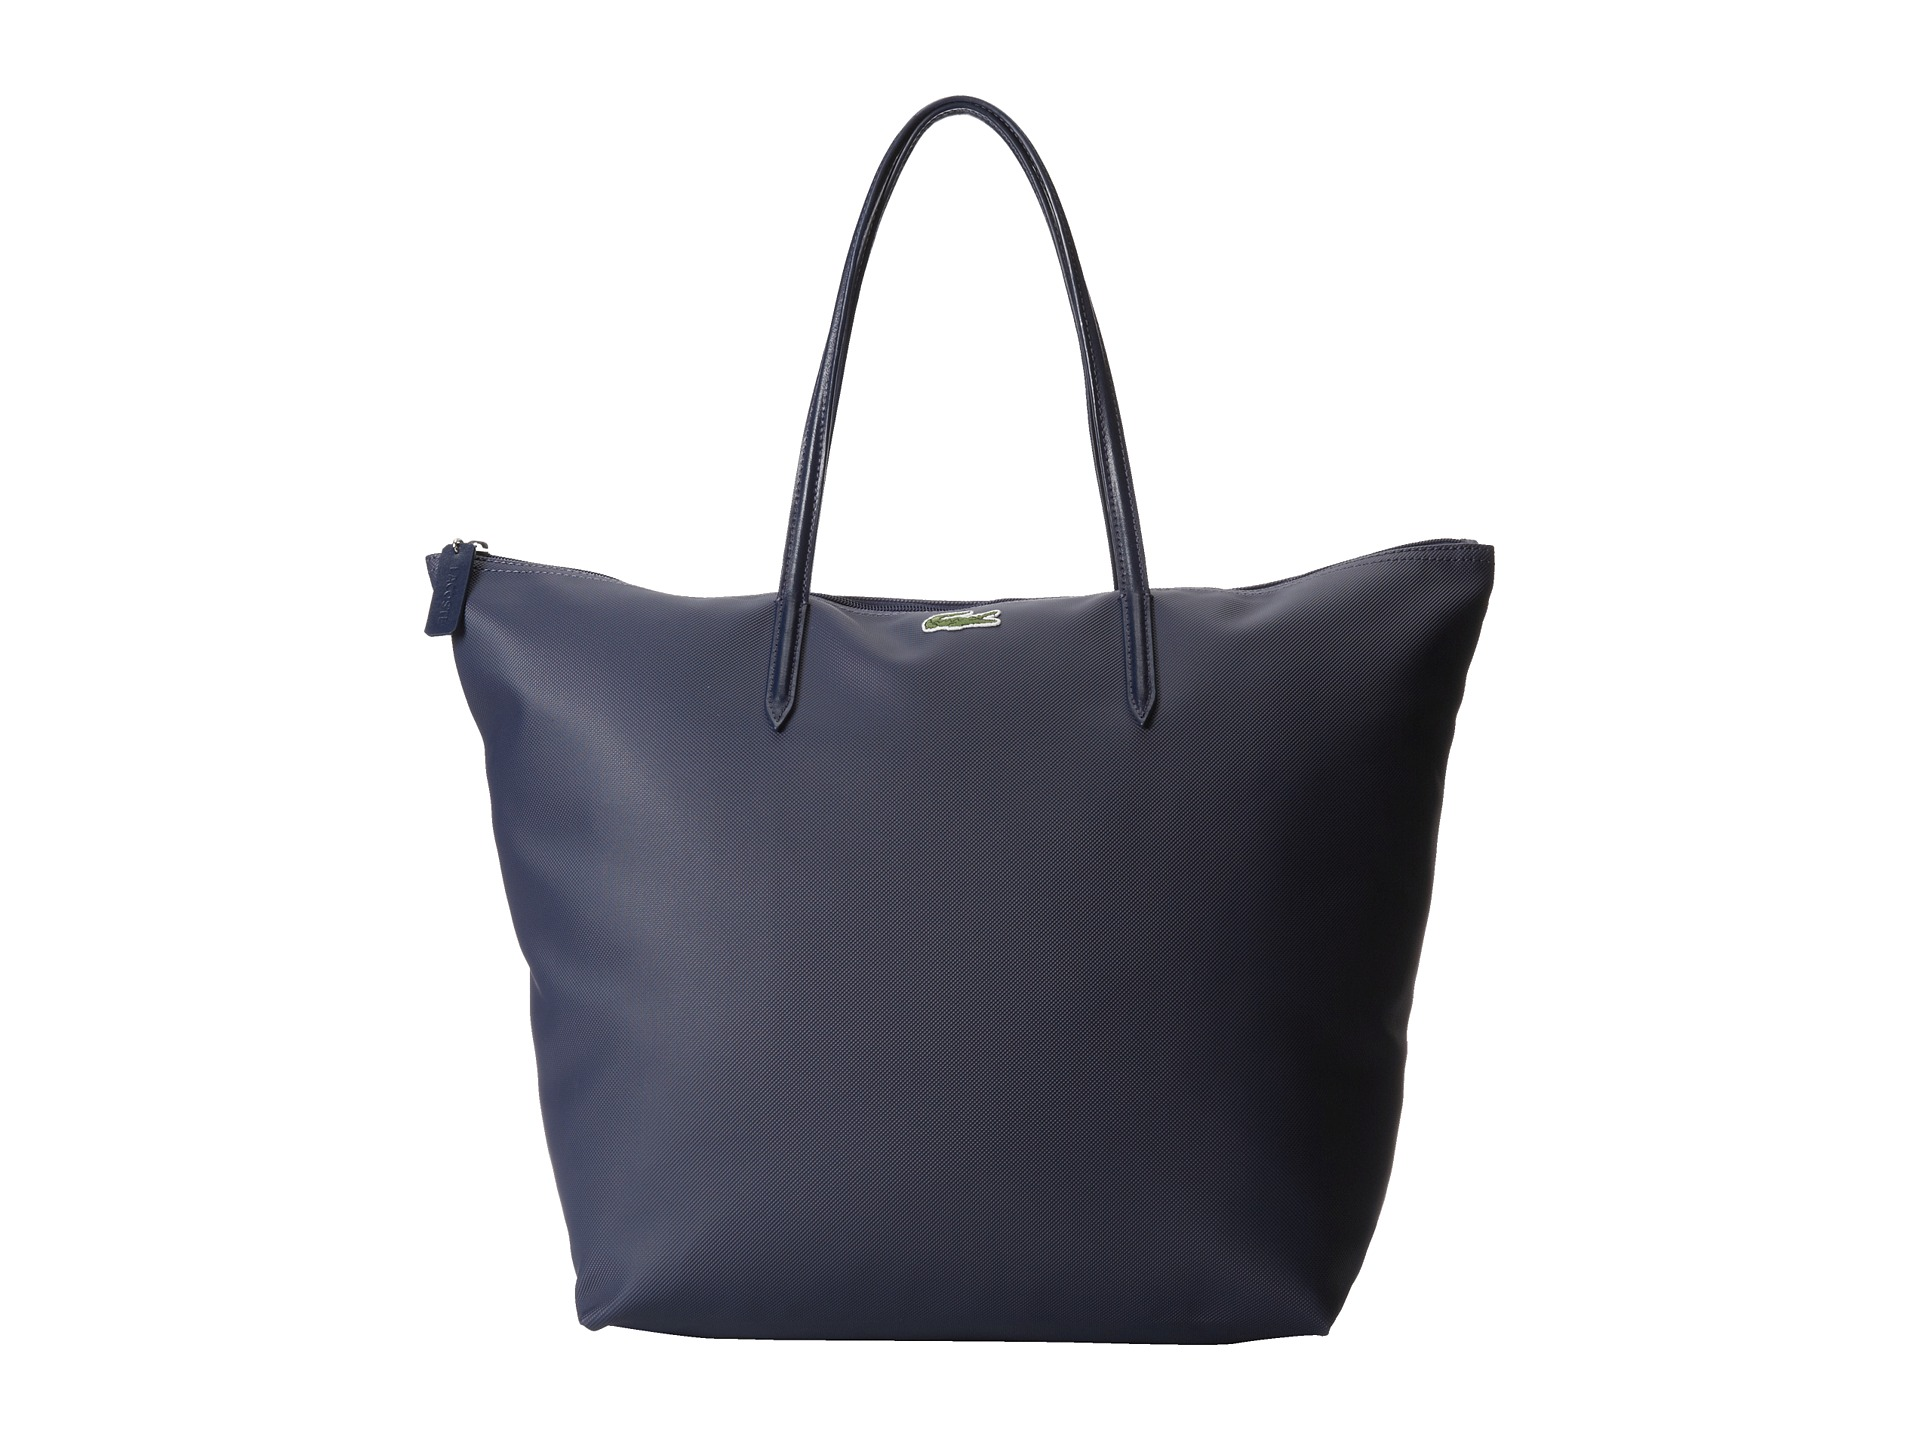 lacoste bags - photo #43